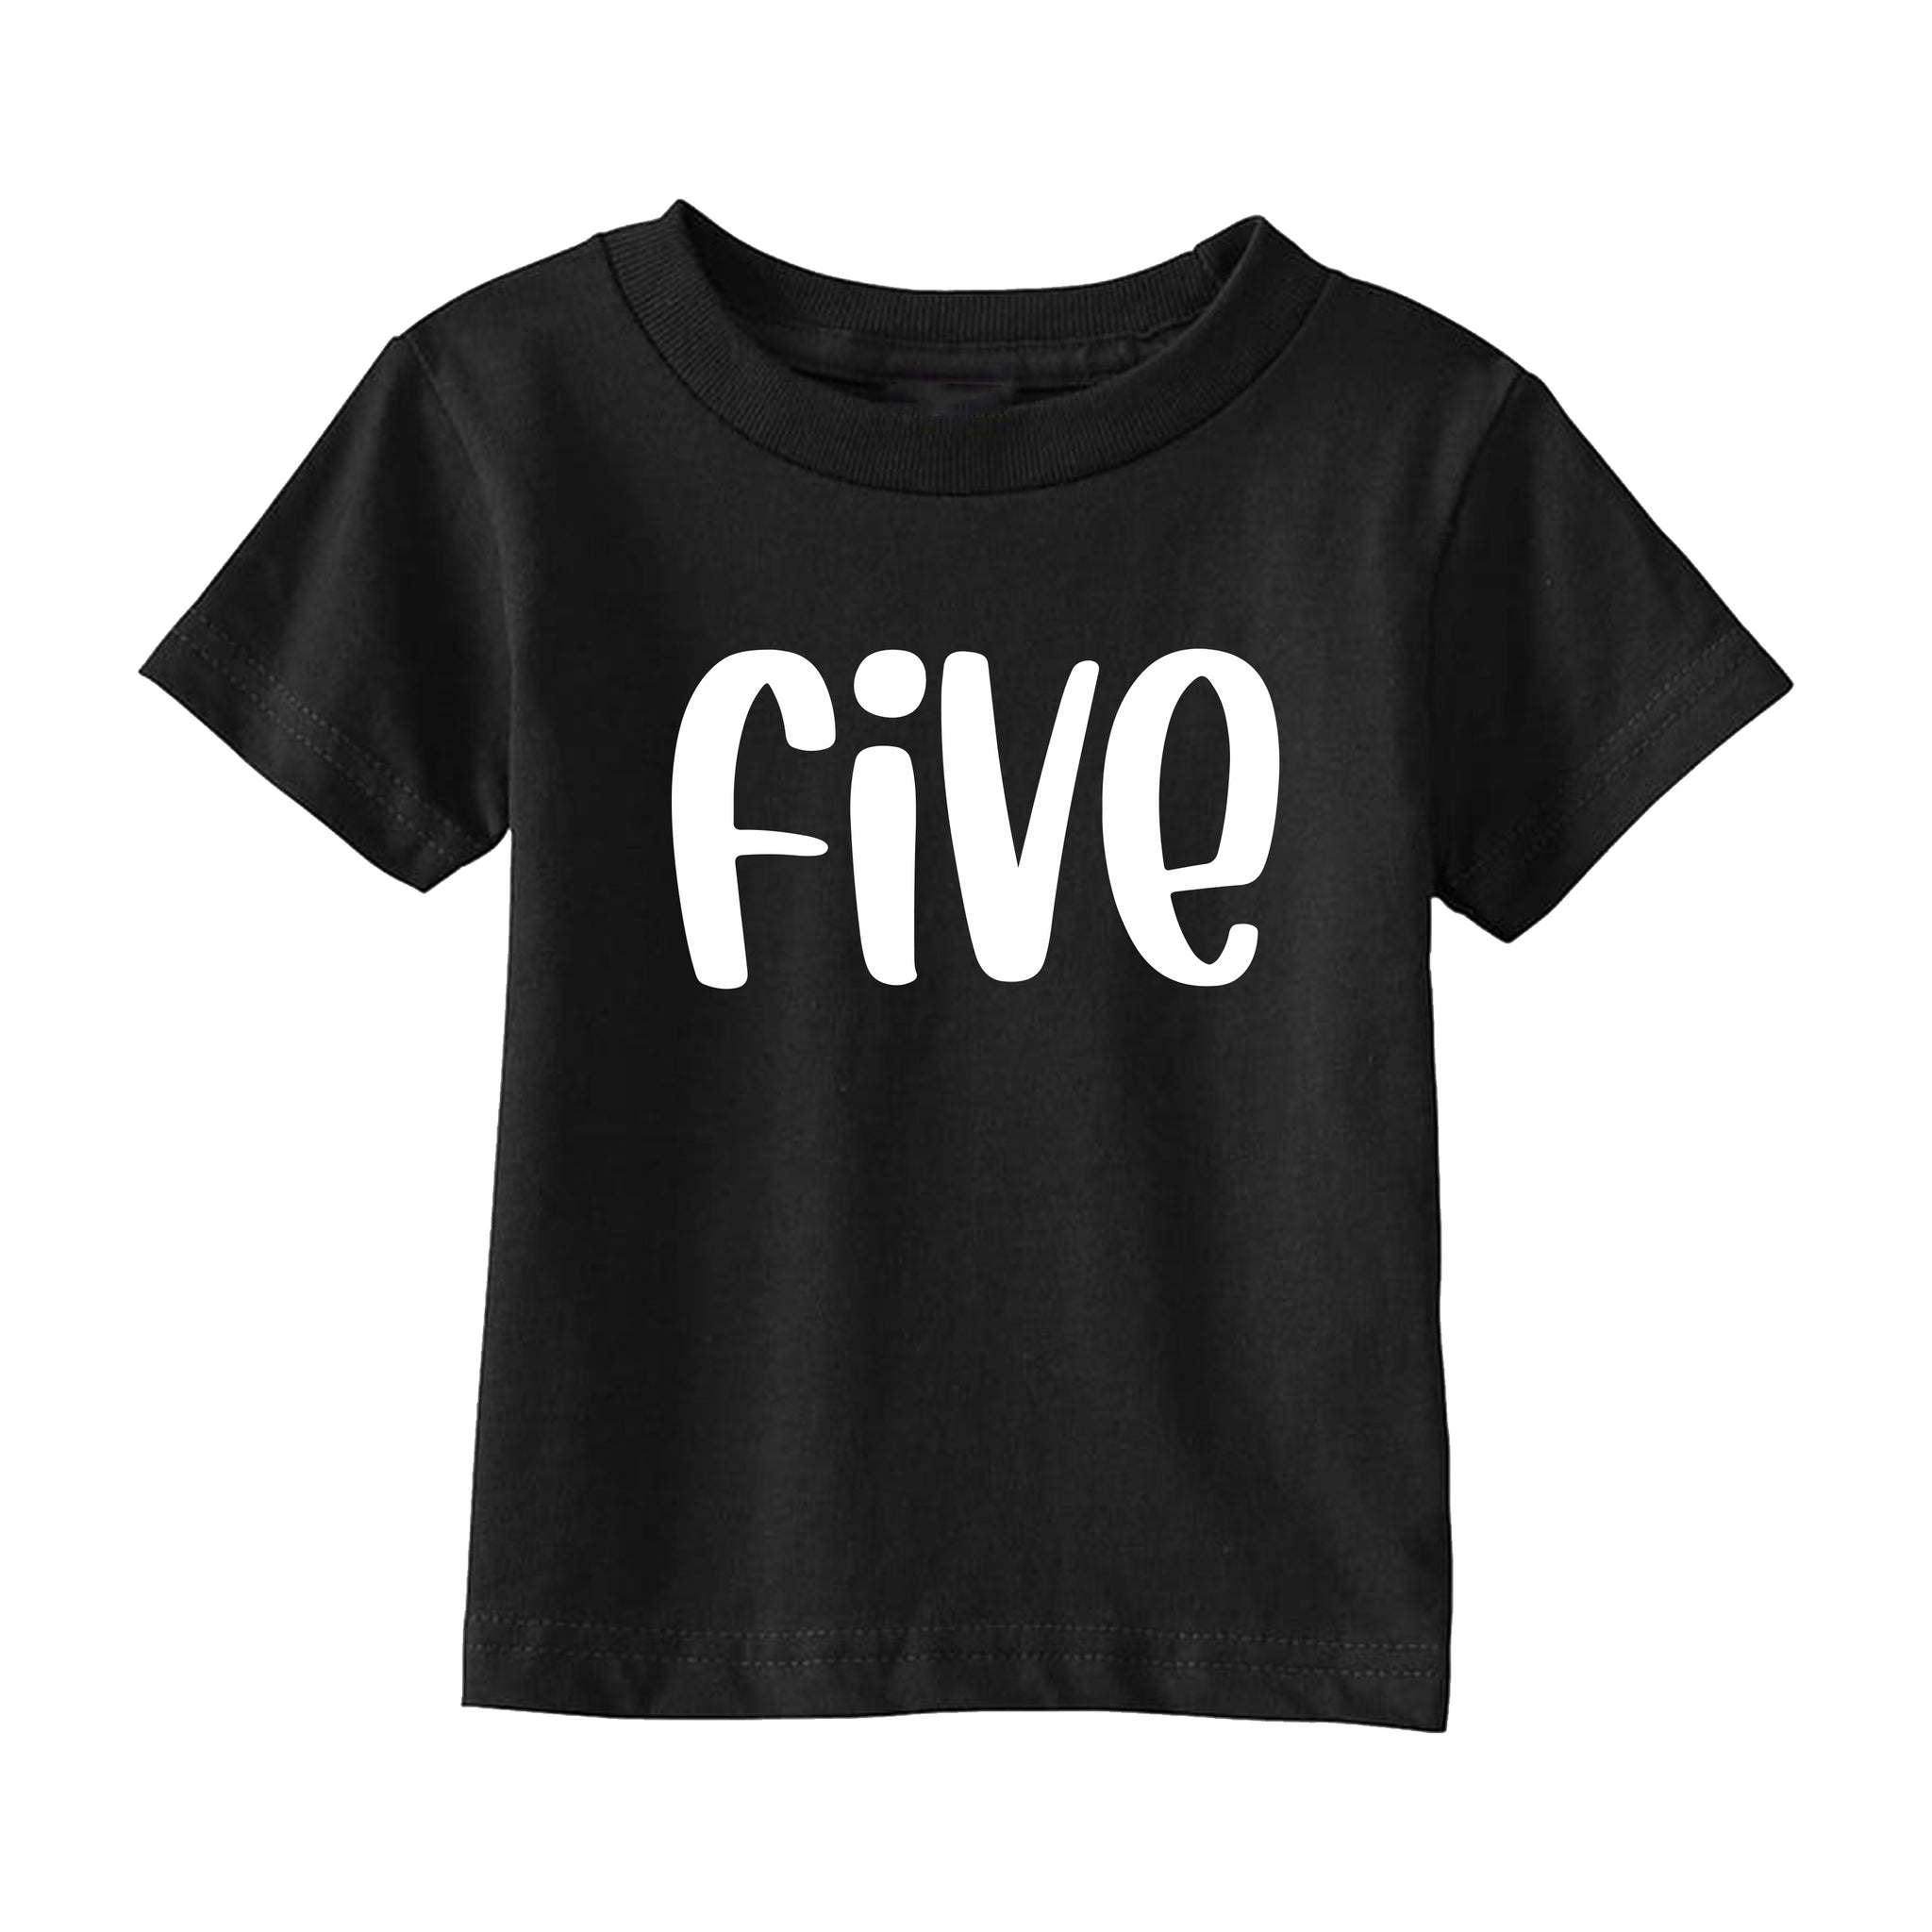 Fifth Birthday T-Shirt - THE CHEVRON HEART